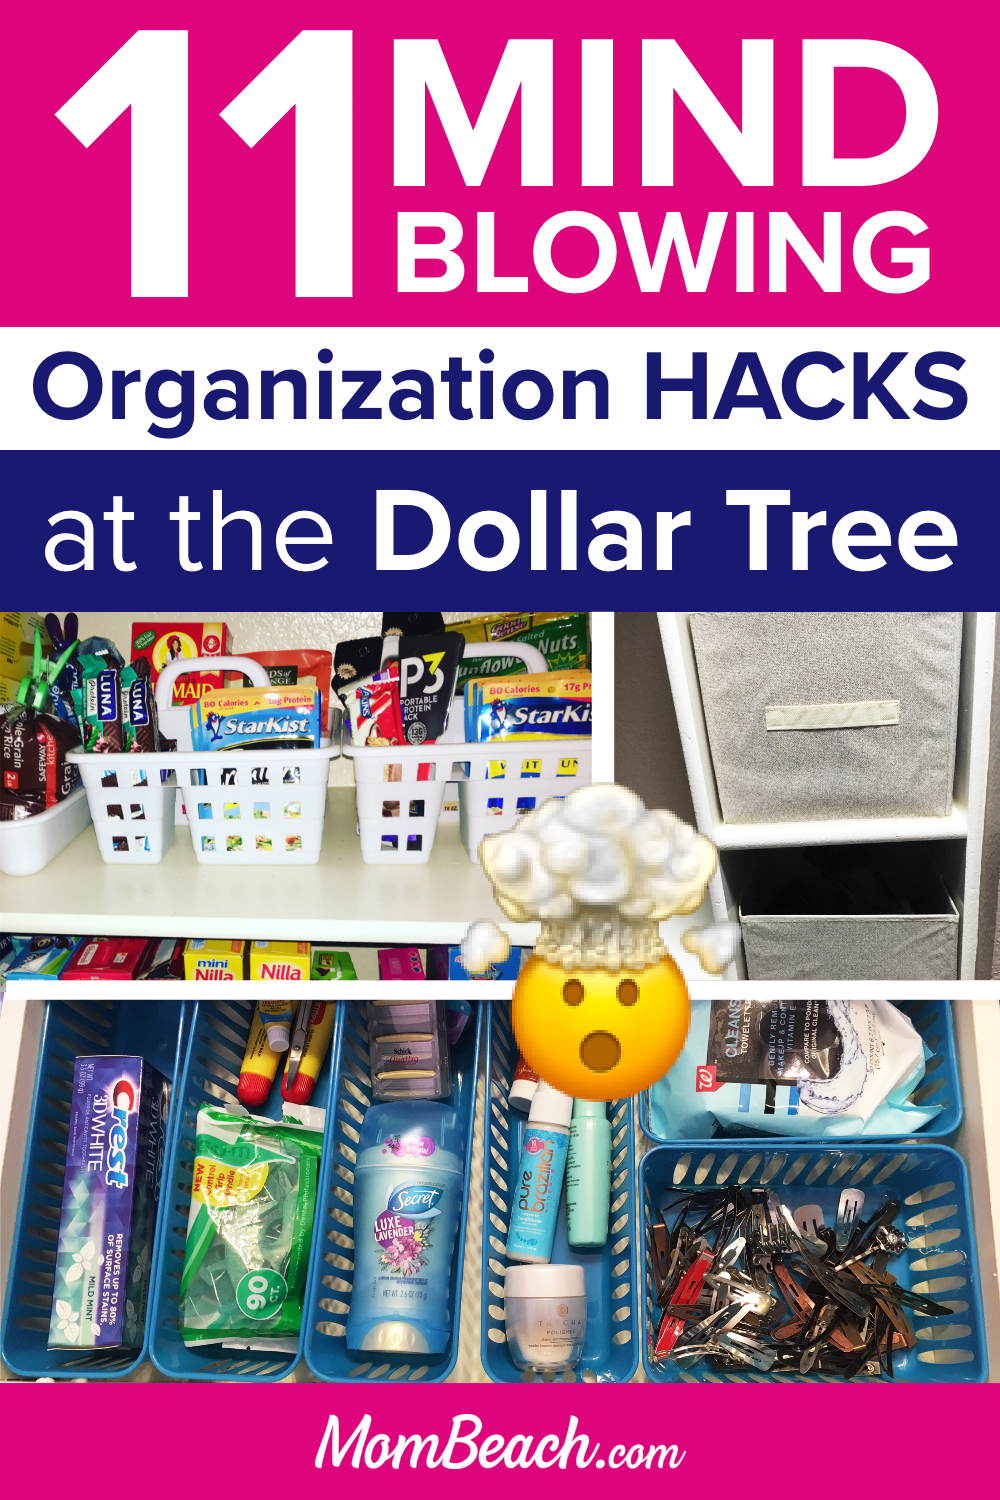 These Dollar Tree organization hacks are perfect for the kitchen, bathroom, bedroom, closet, pantry, kids are more! This is a 100% original content post. Get your home organized and save money today with containers from the dollar store. #dollartreeorganization #dollartreeorganizationideas #organizationideas #kitchenorganization #bathroomorganization #bedroomorganization #closetorganization #pantryorganization